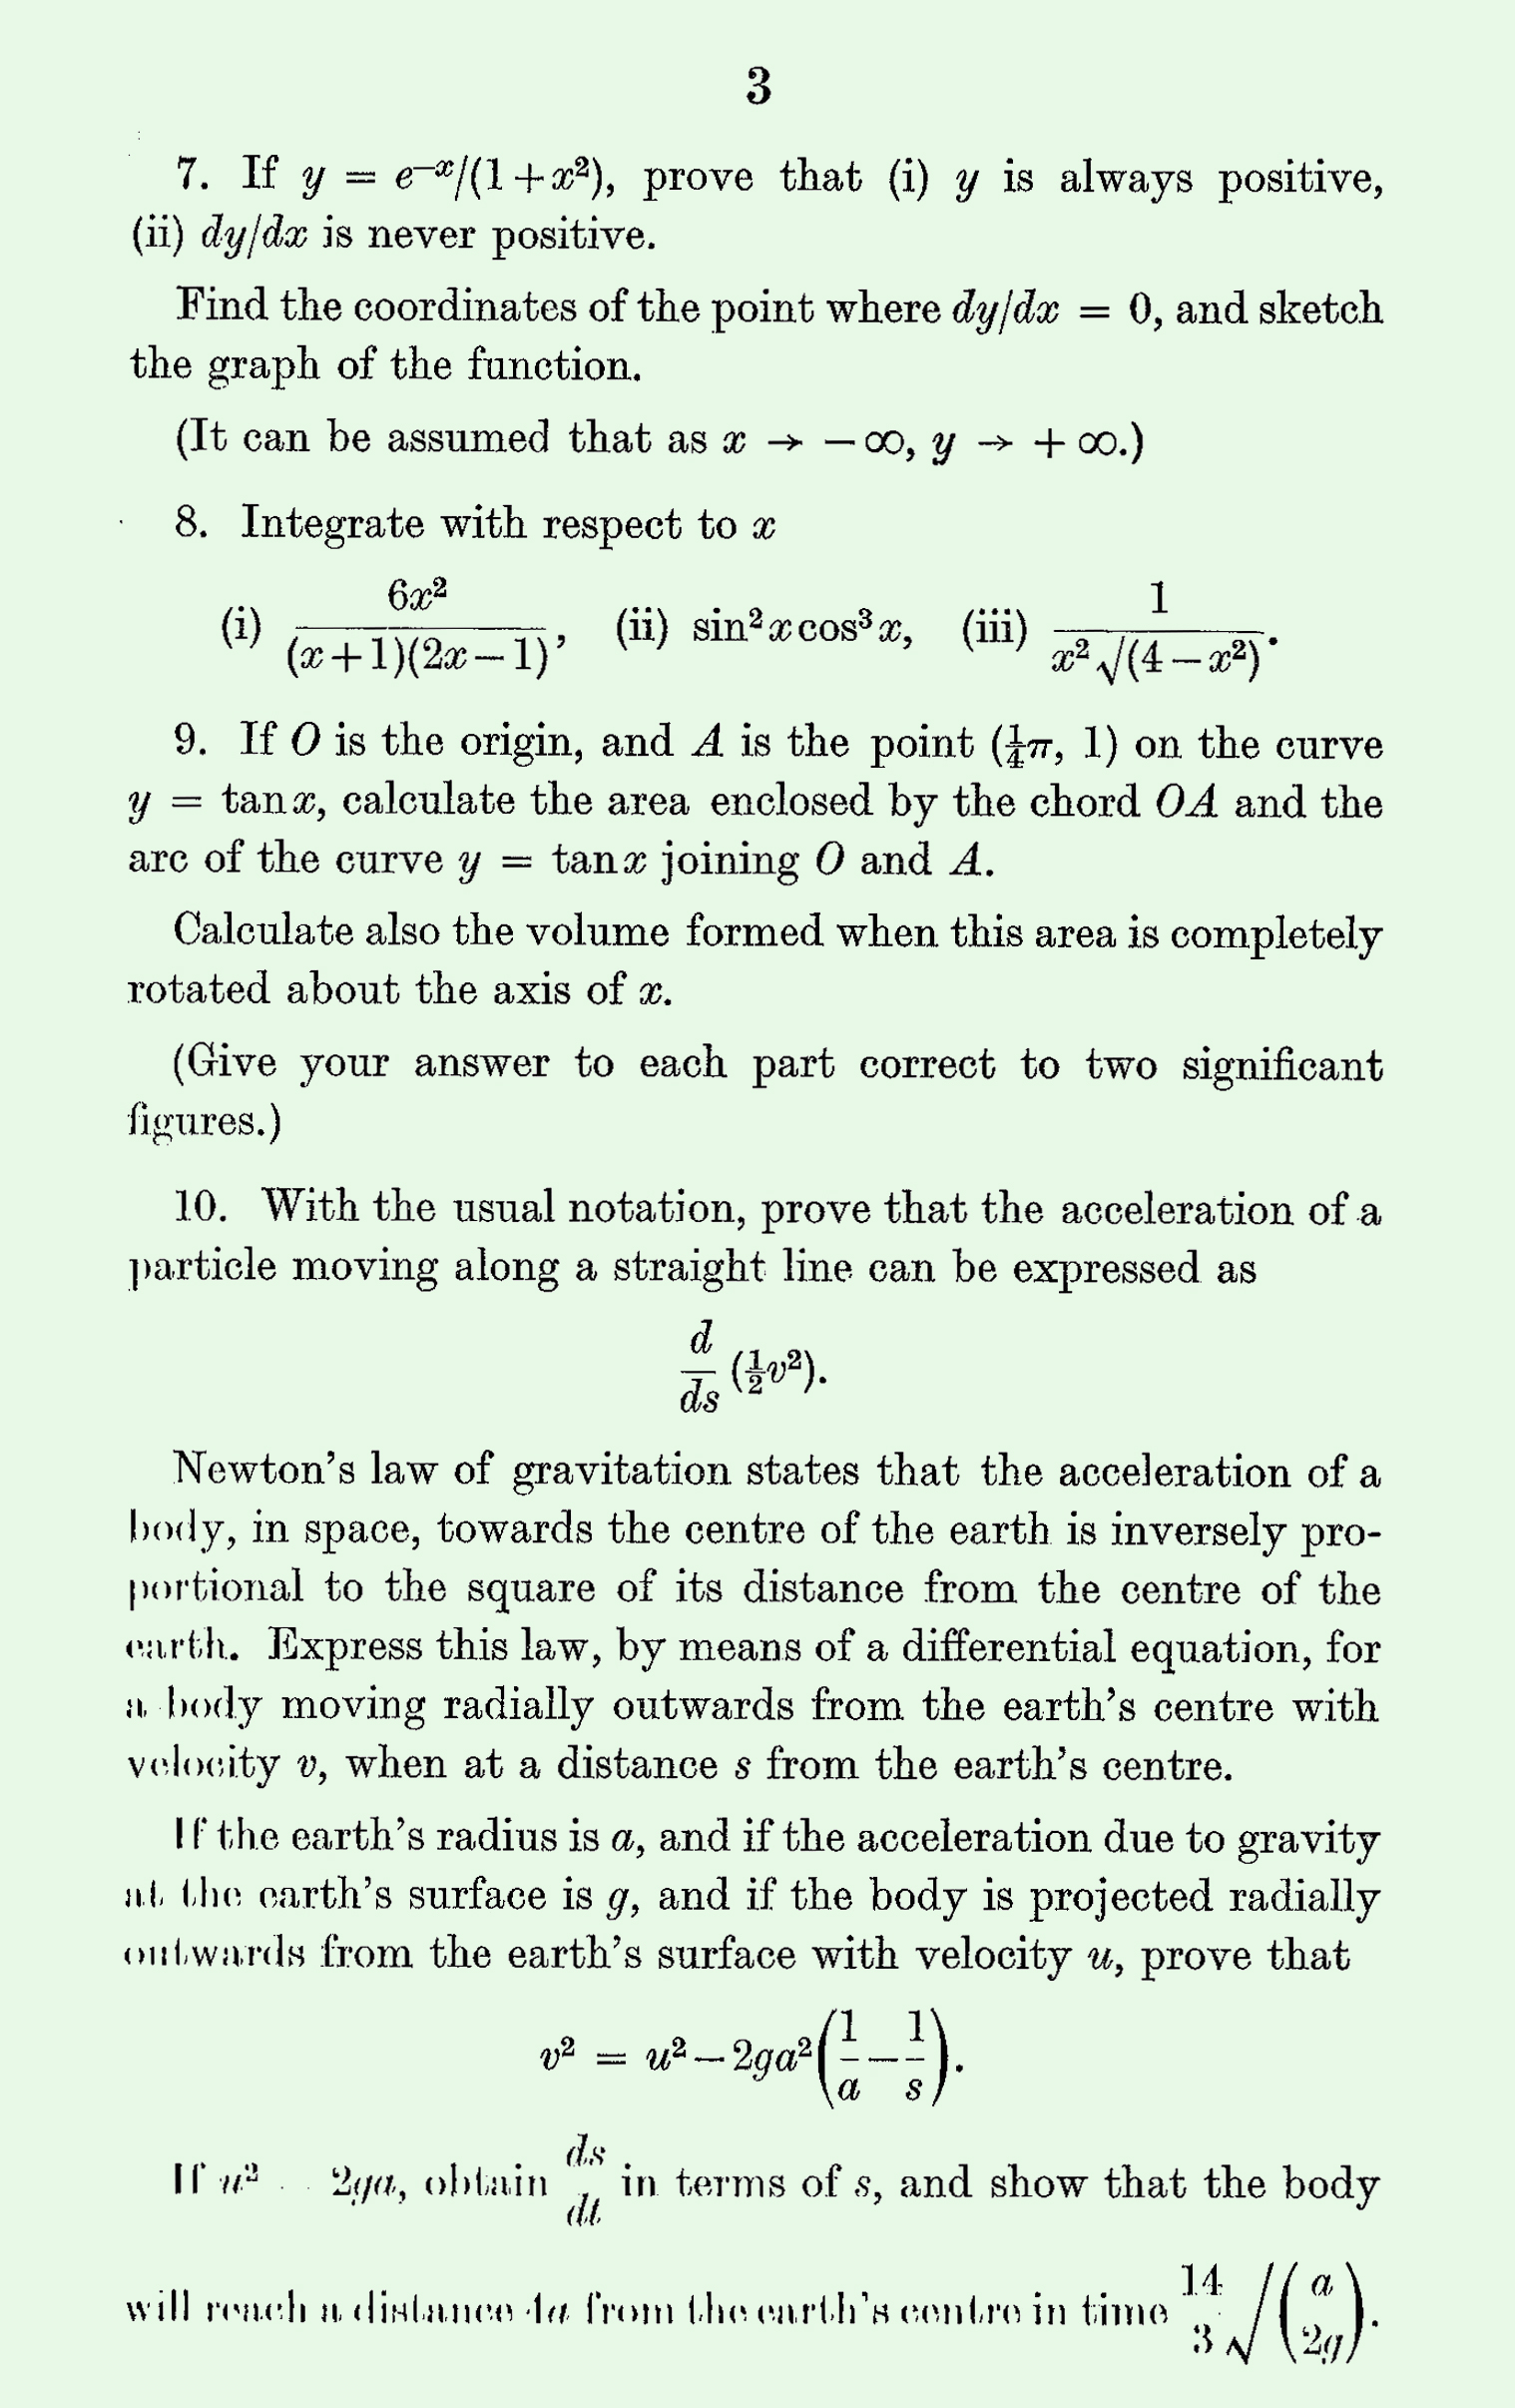 1963 Pure Mathematics A Level & S Level Paper II page 3